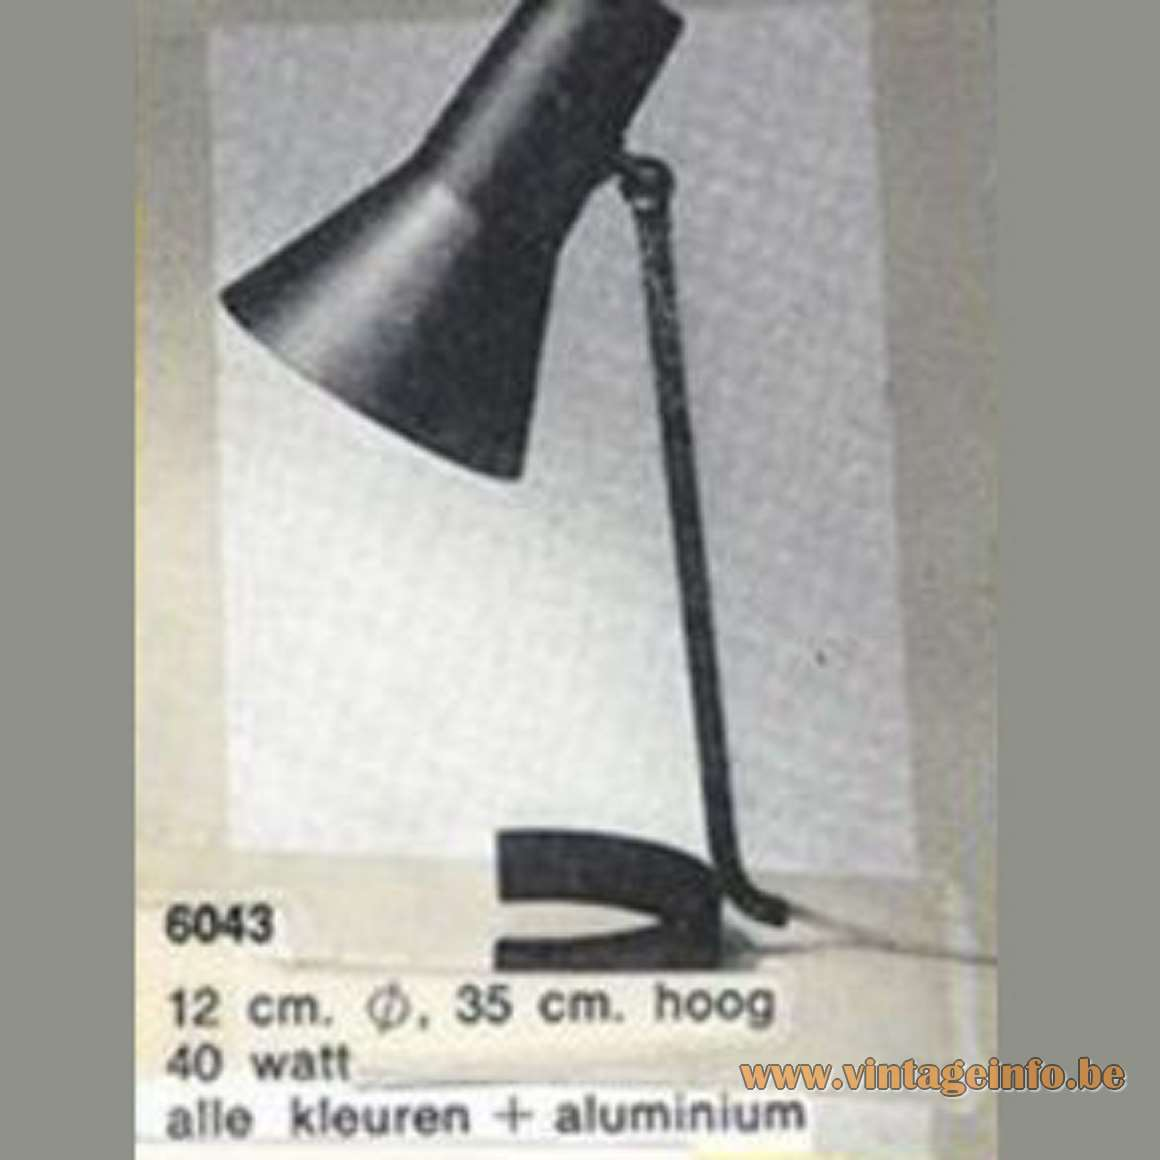 ANVIA Desk Lamp 6043 - Anvia catalogue picture